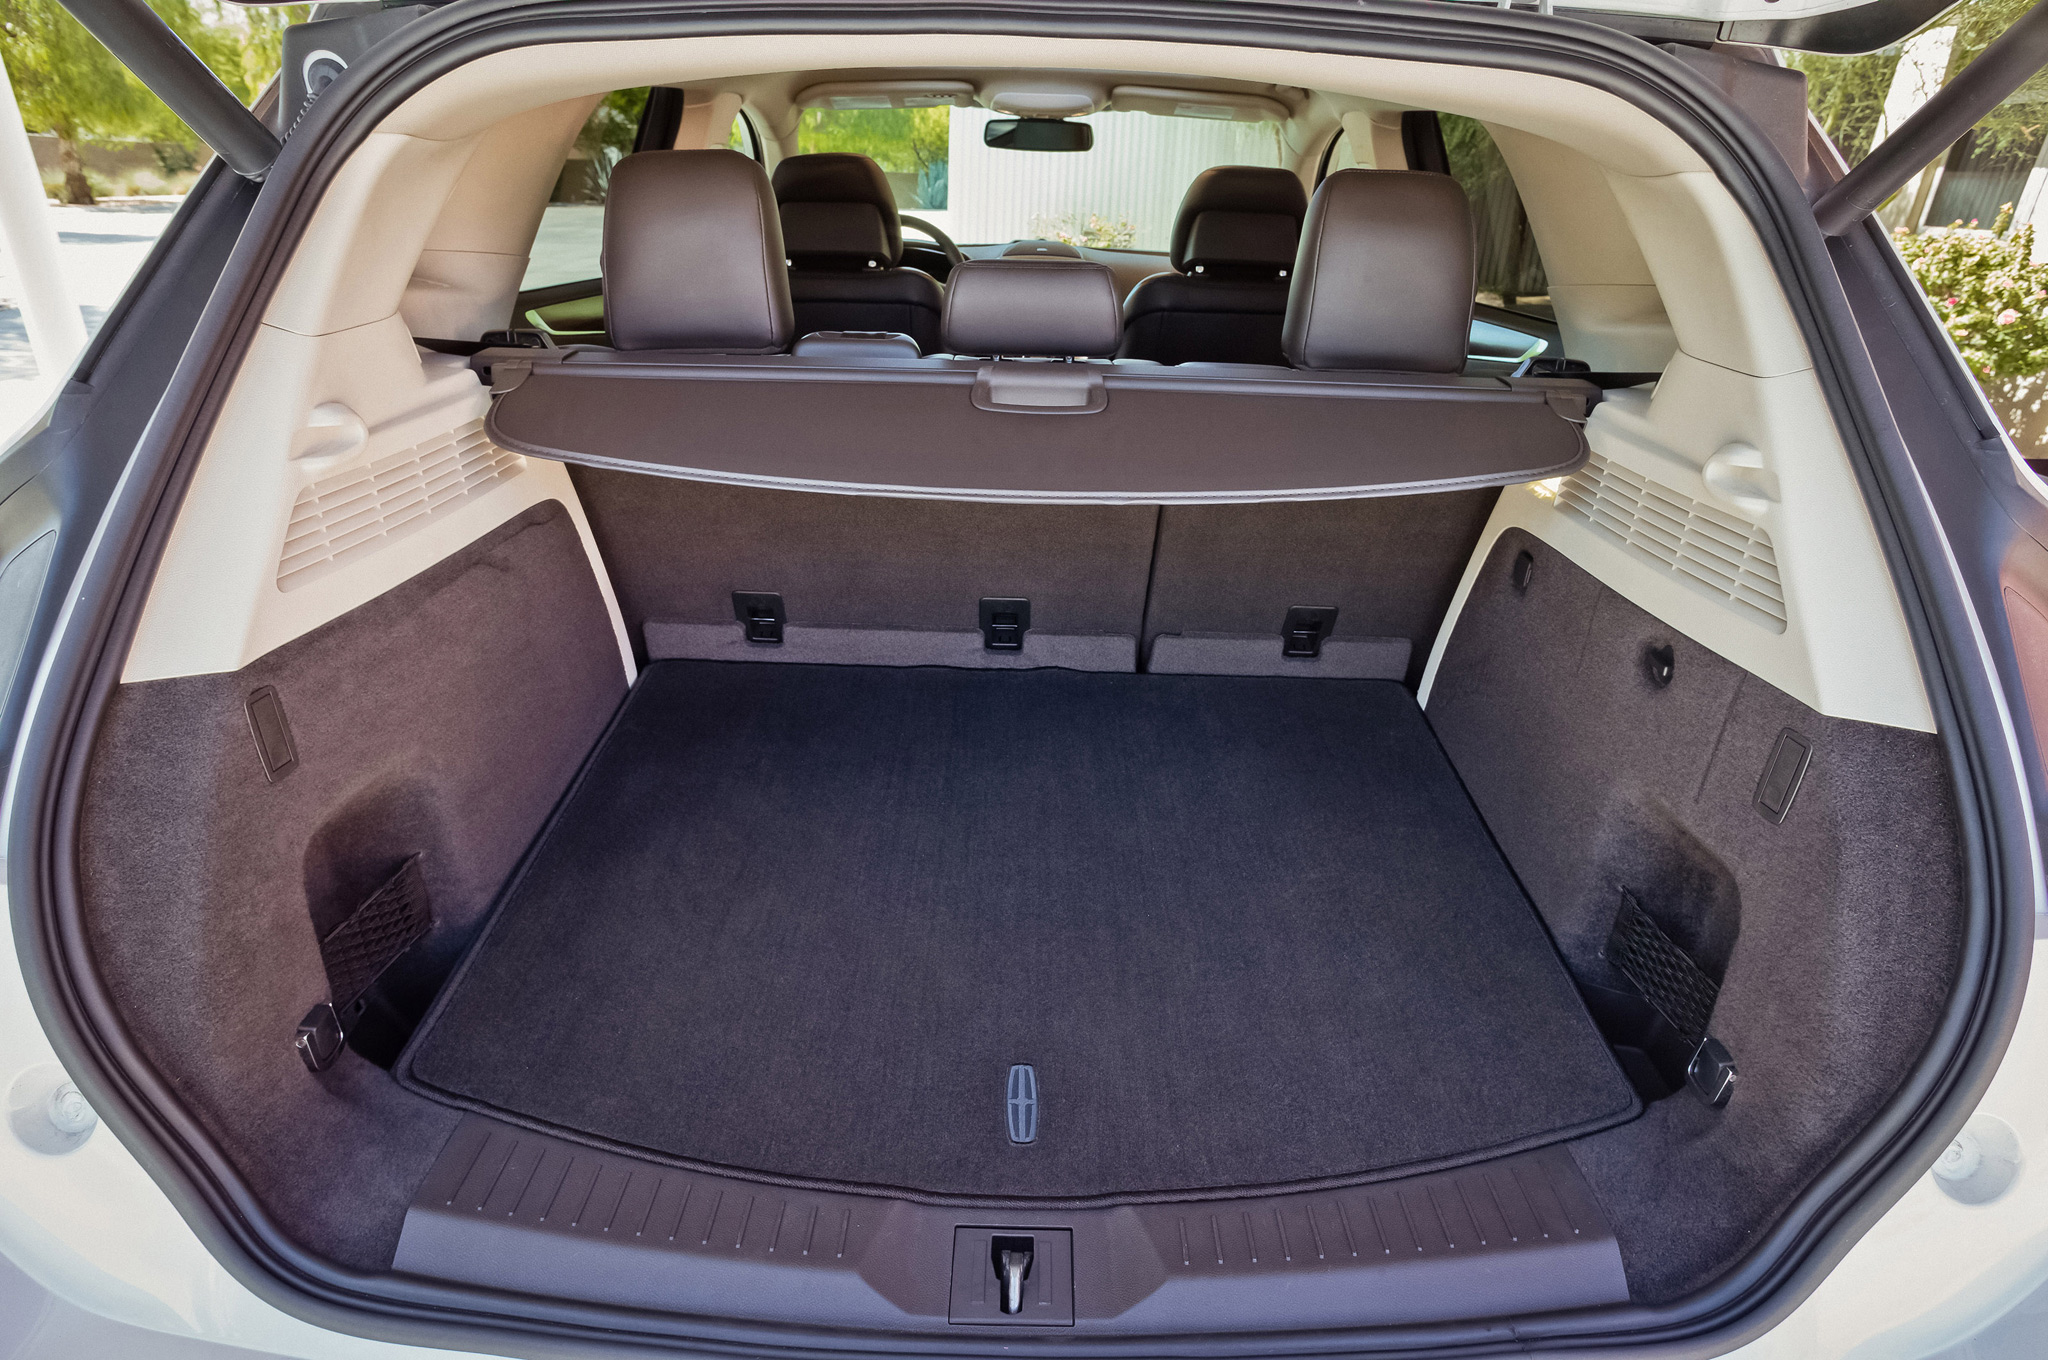 2015 Lincoln MKC Rear Interior Seats Up